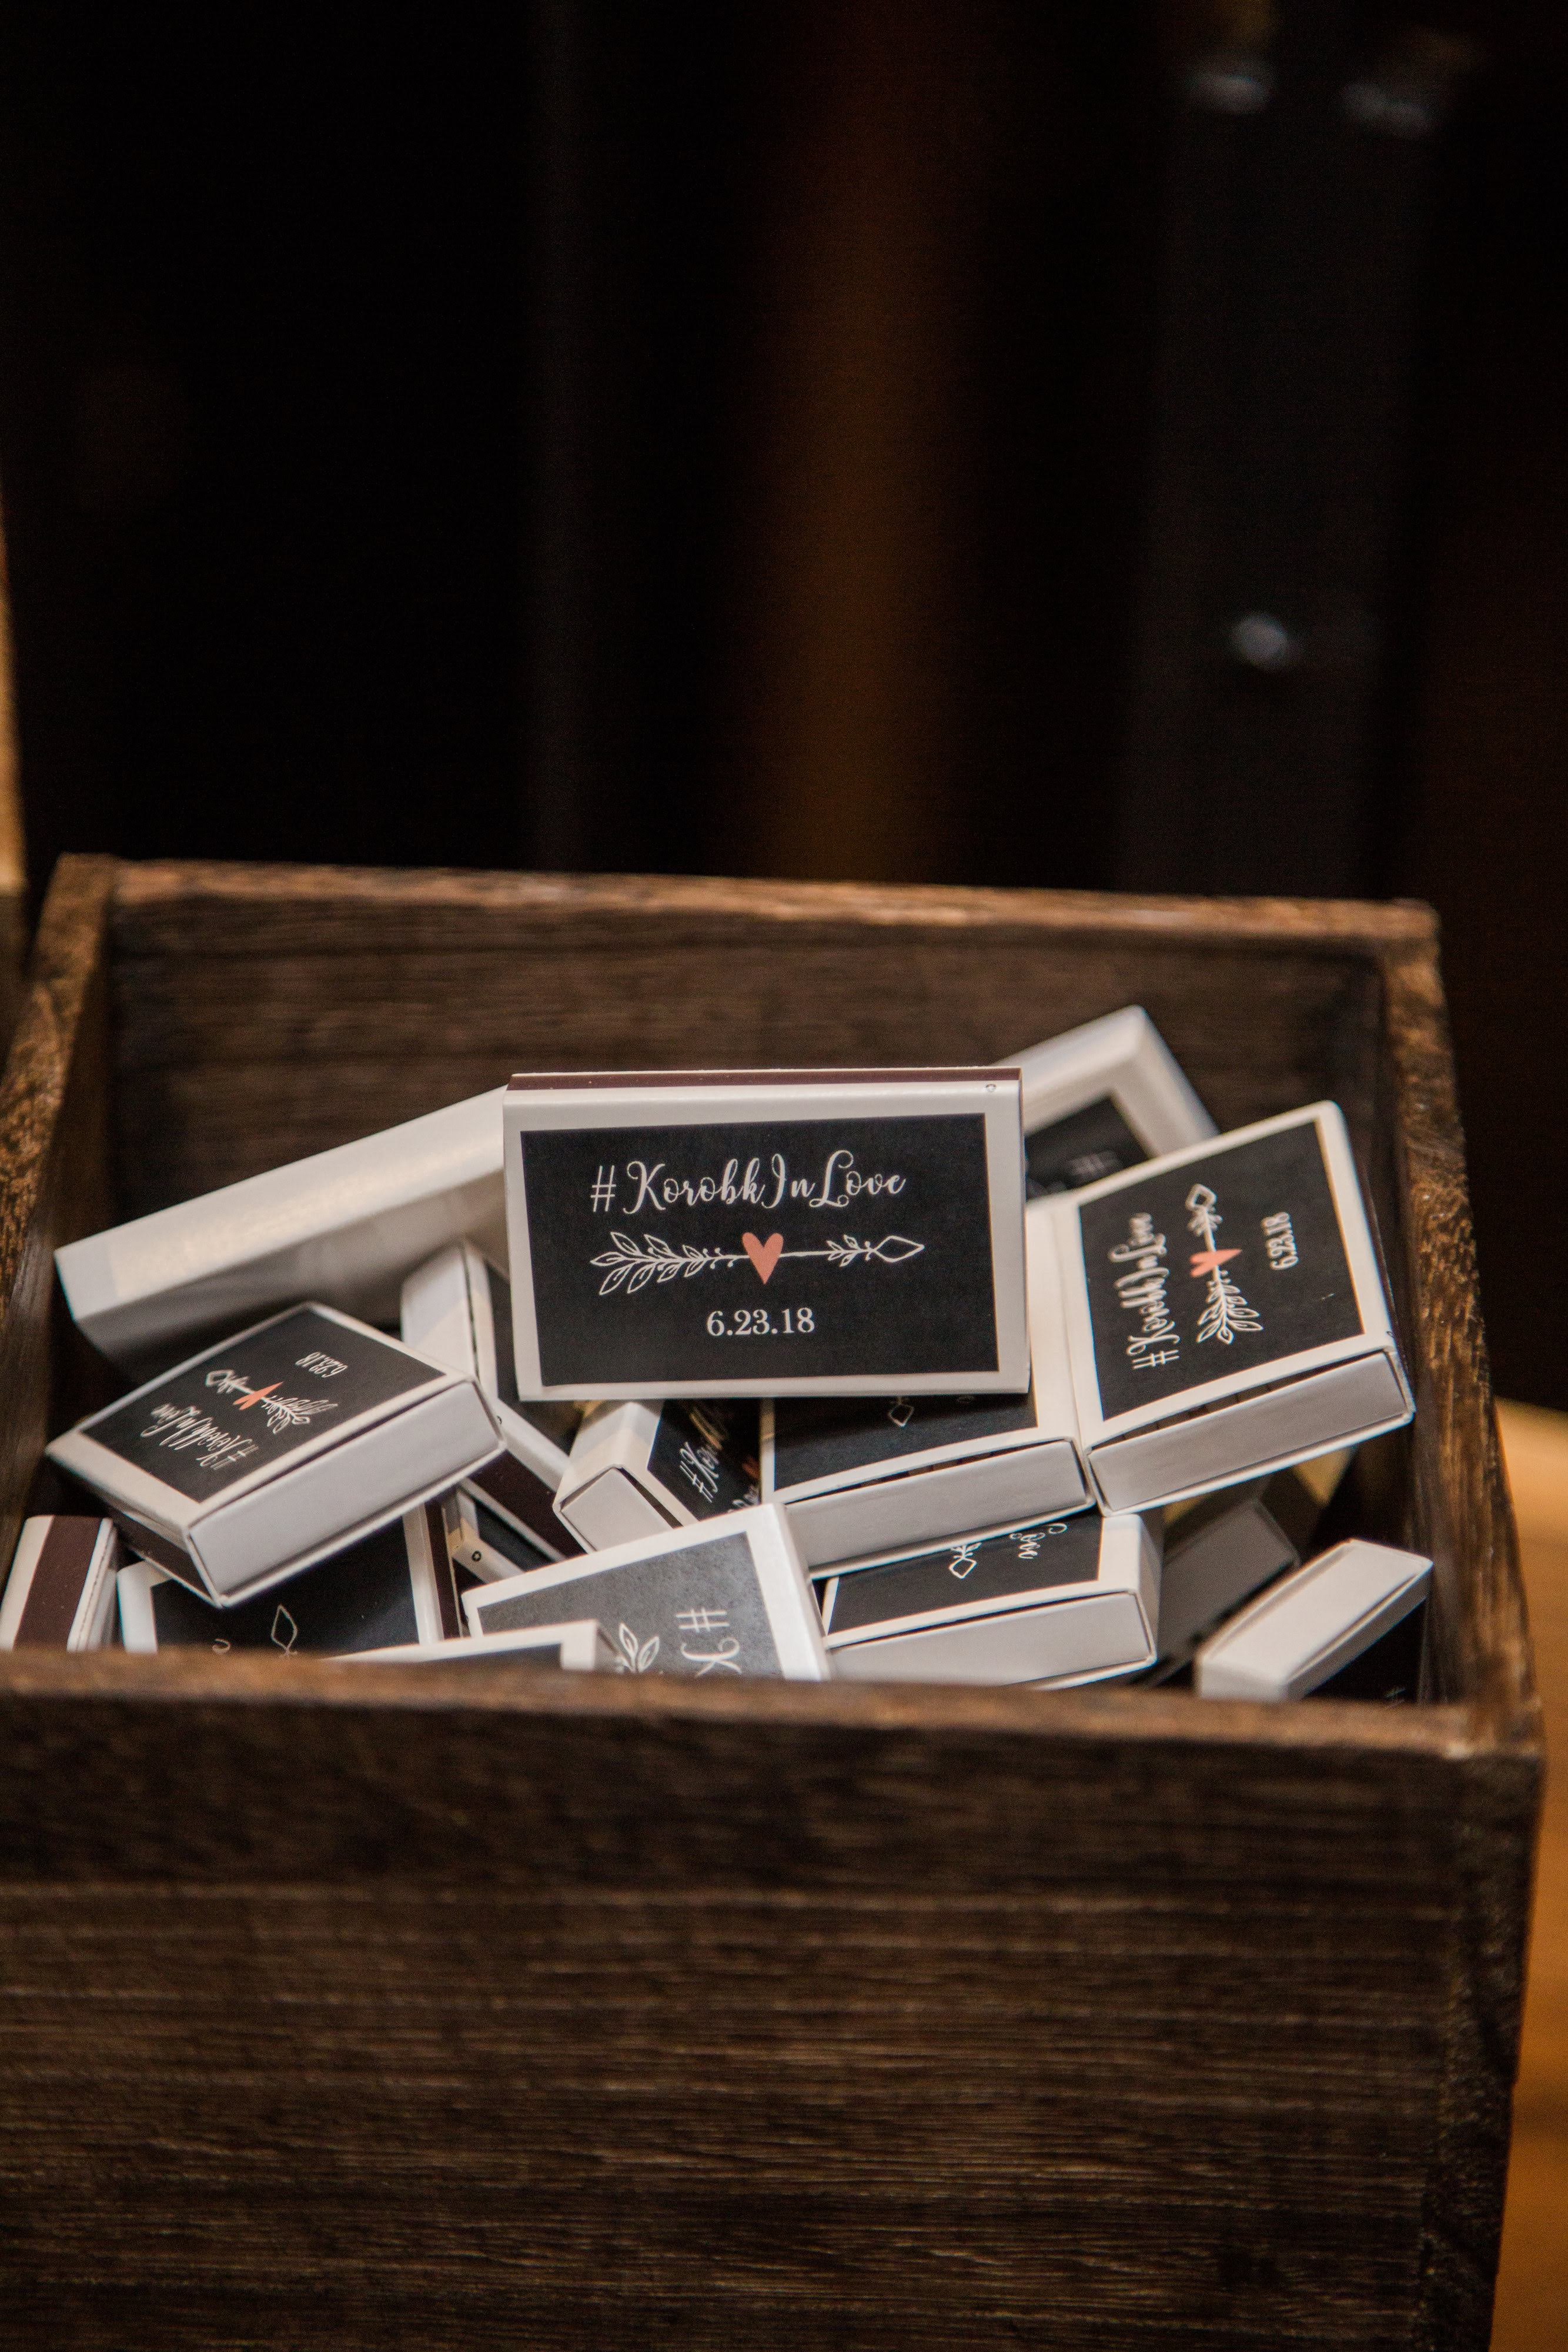 Melissa DIYed the stickers on her take-home gifts for guests, which were match boxes. (Image: Birds of a Feather Photography/{ }http://birdsofafeatherphotos.com){ }